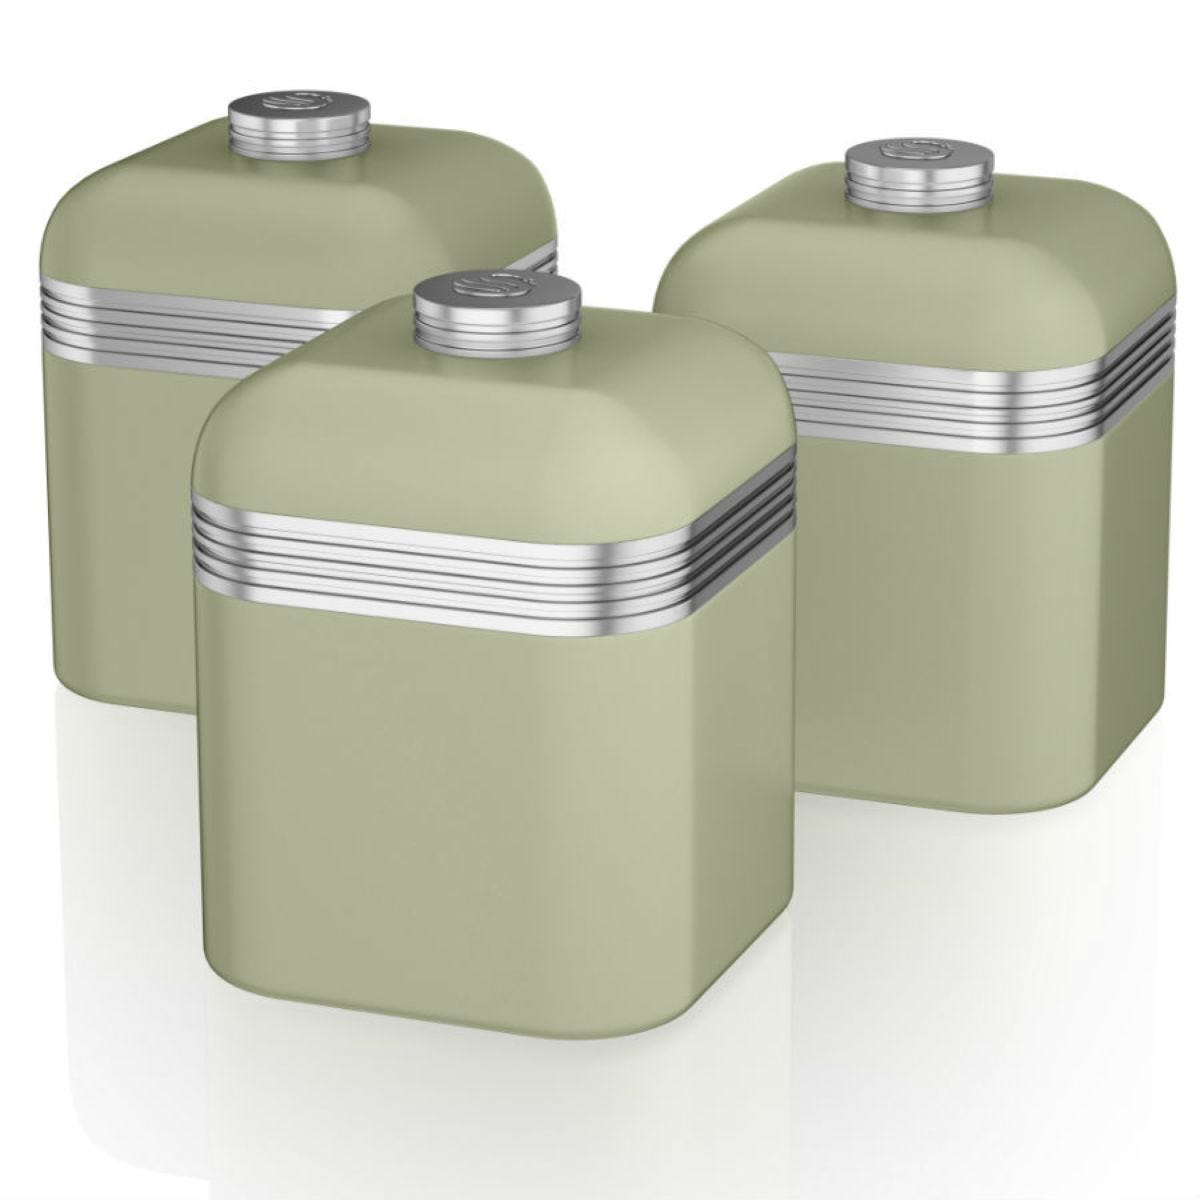 Swan Retro Set Of 3 Canisters - Green